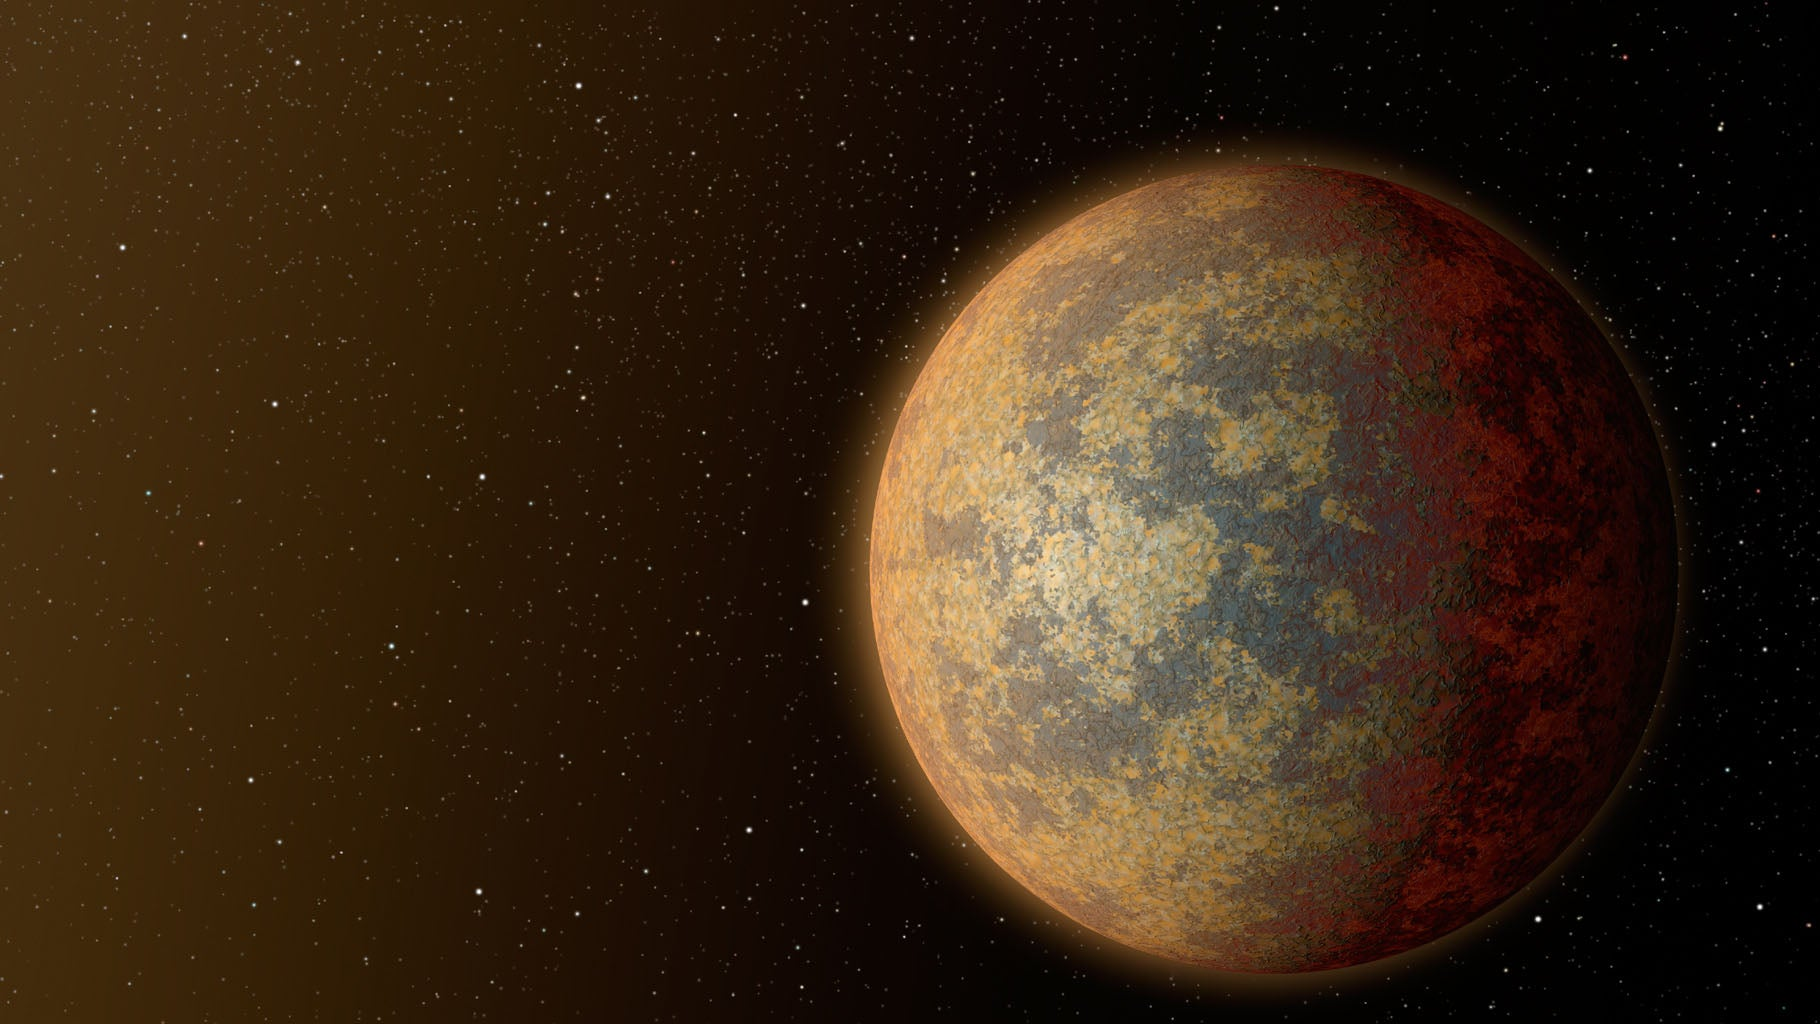 A Super Hot, Rocky Planet Has Been Discovered Just 21 Light Years Away